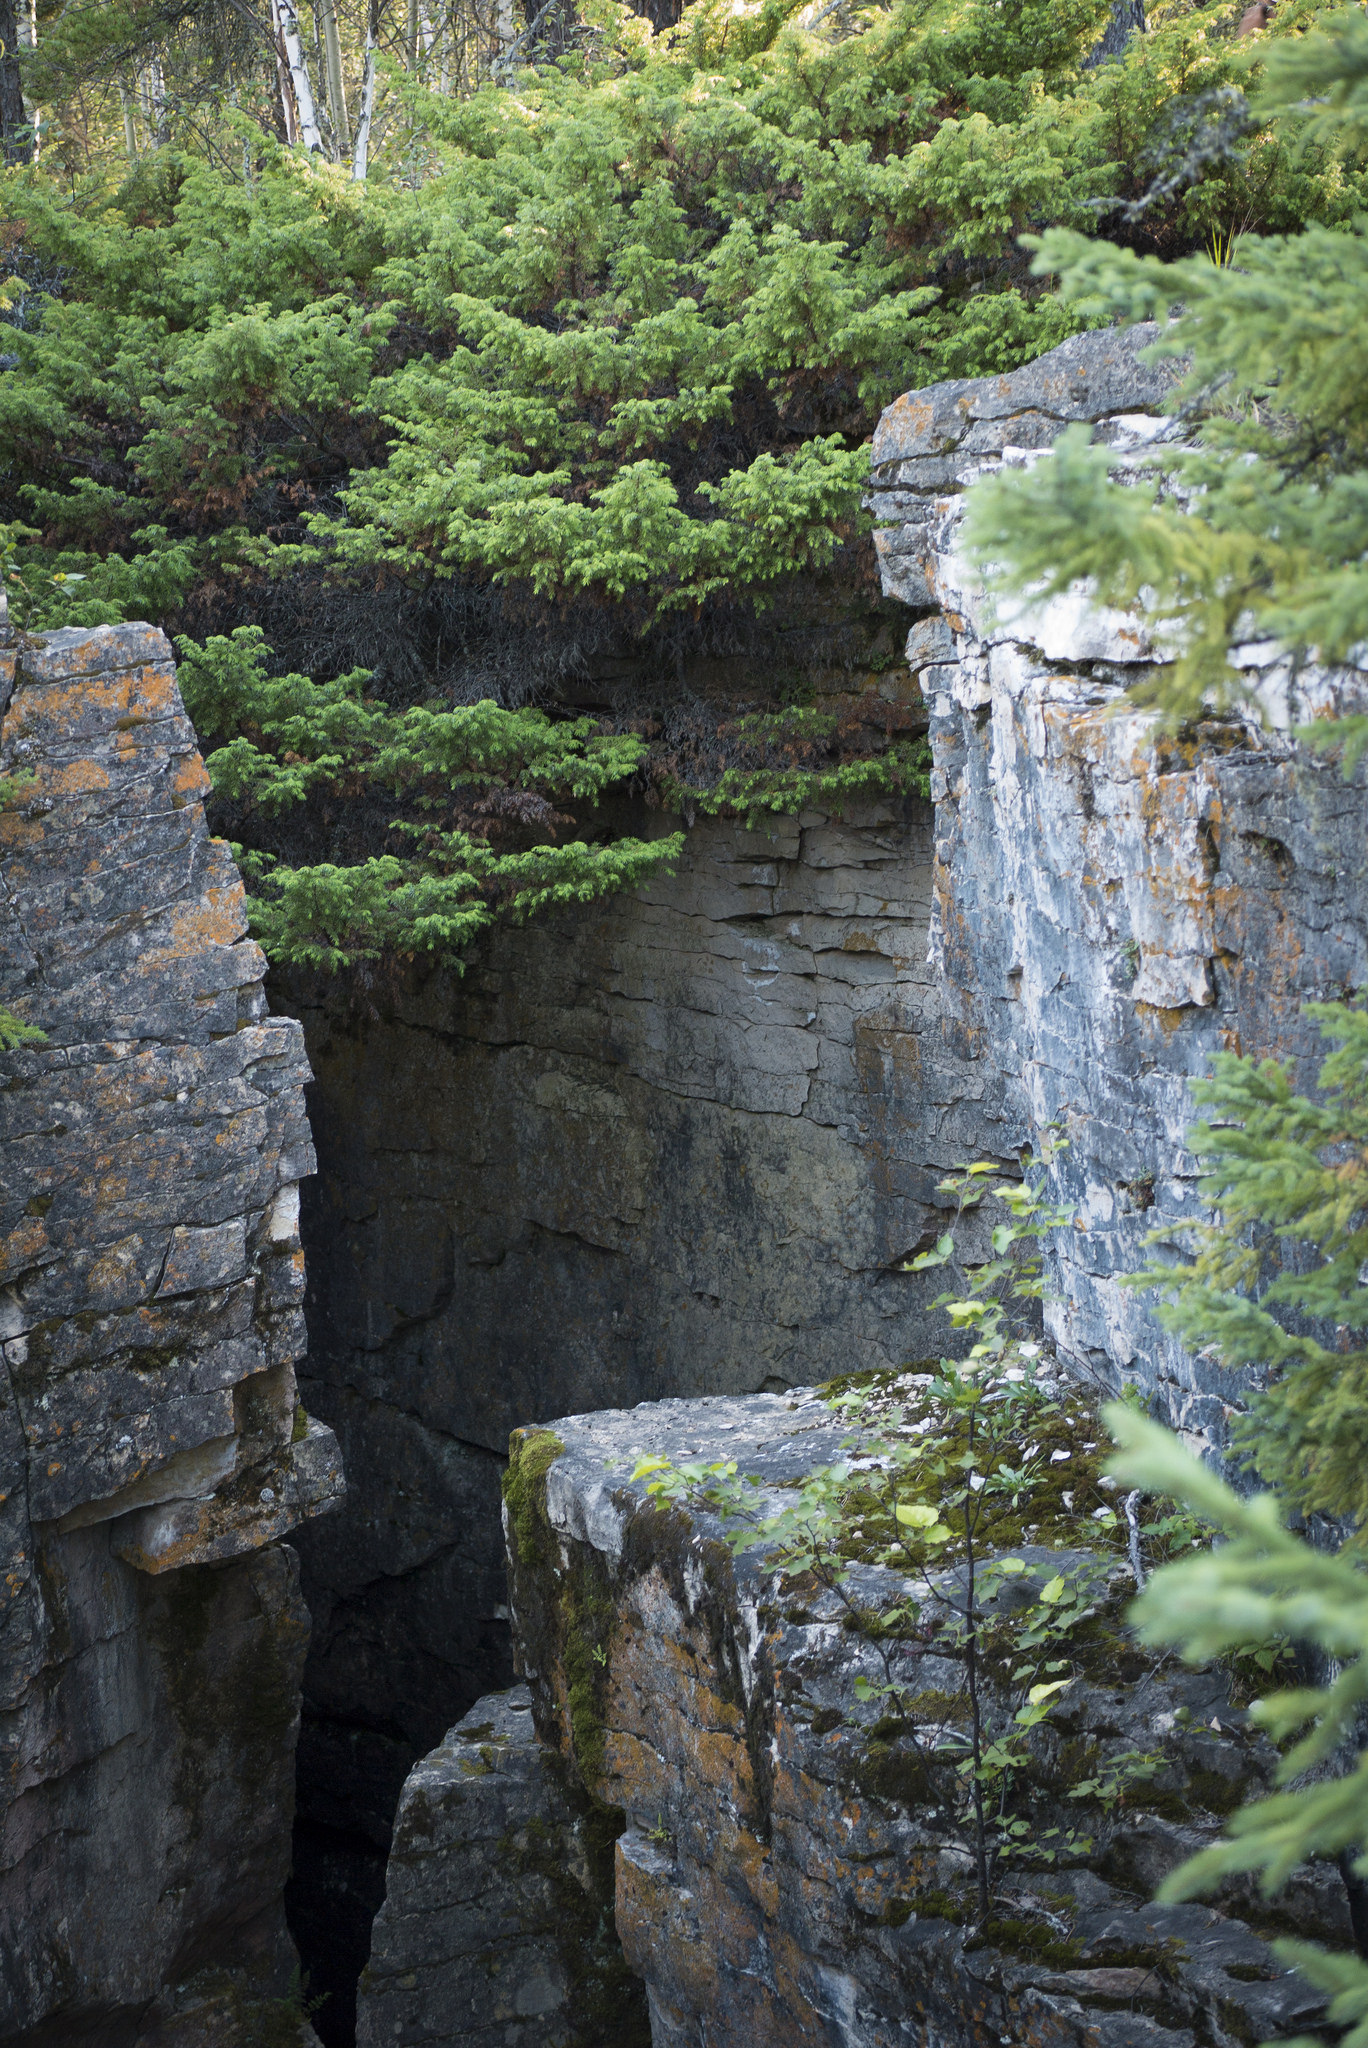 The Limestone Crevices of Amisk Lake are frighteningly steep.